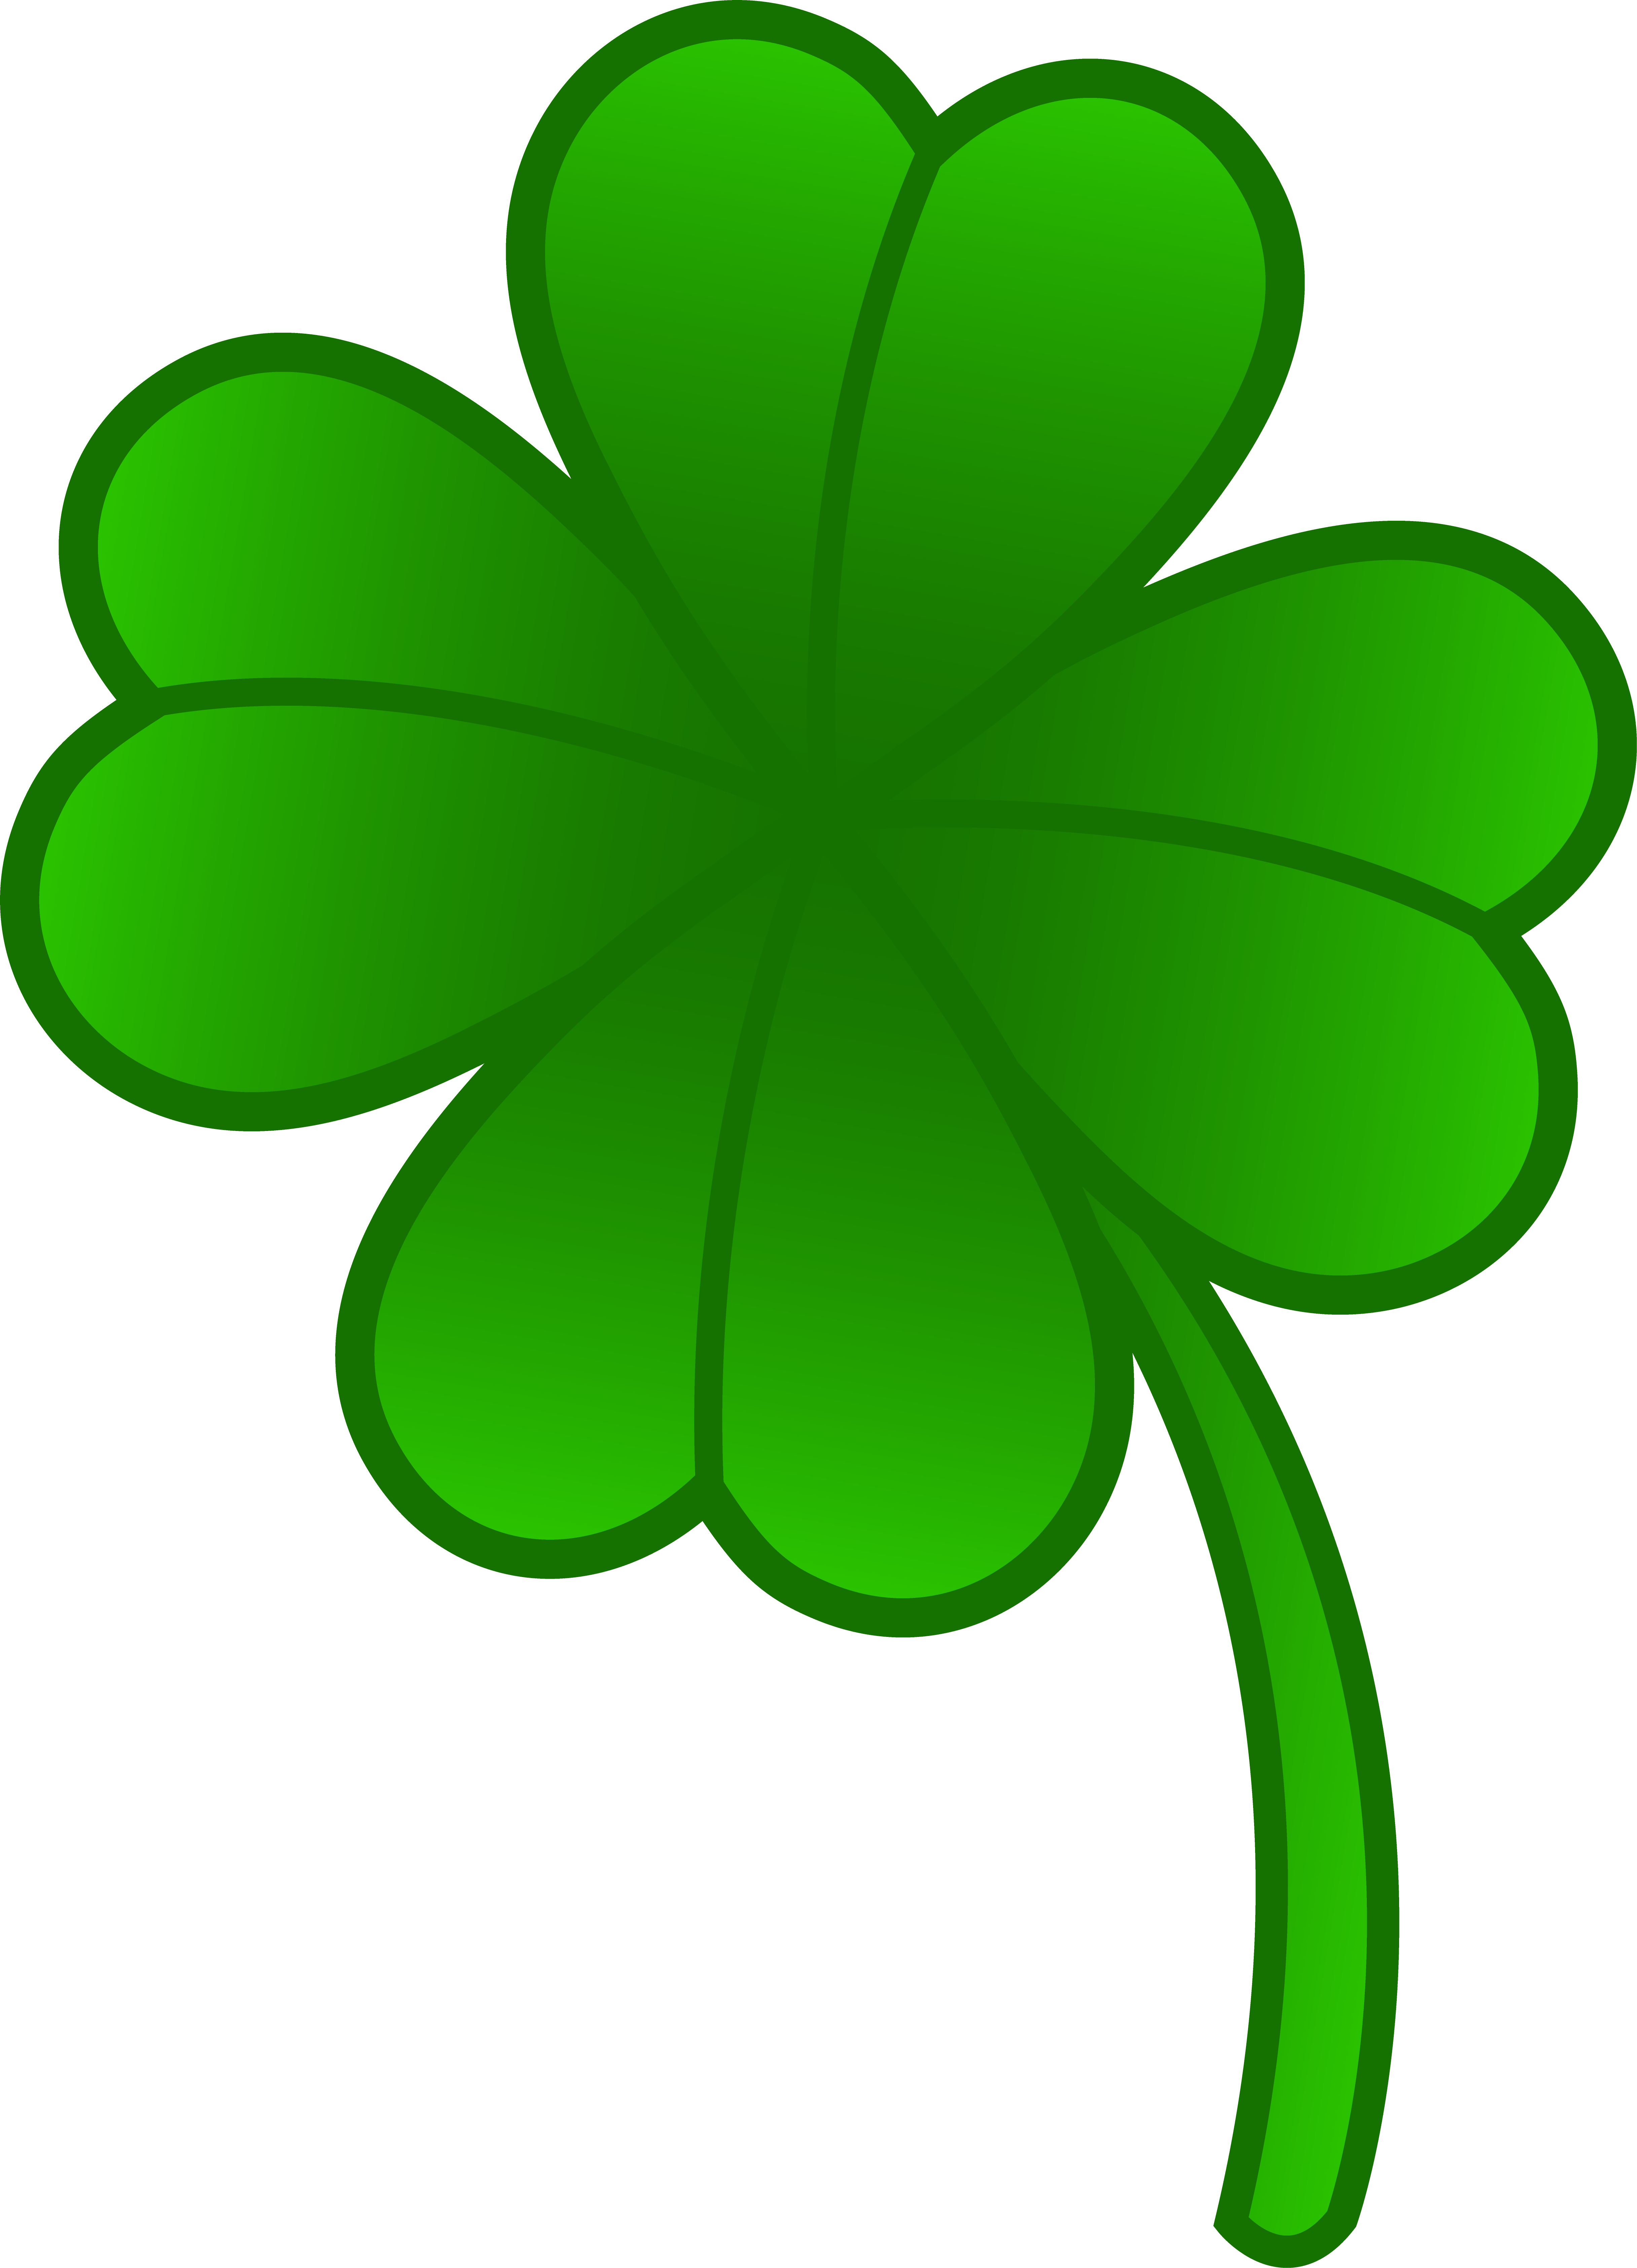 Green Four Leaf Clover - Free Clip Art-Green Four Leaf Clover - Free Clip Art-17